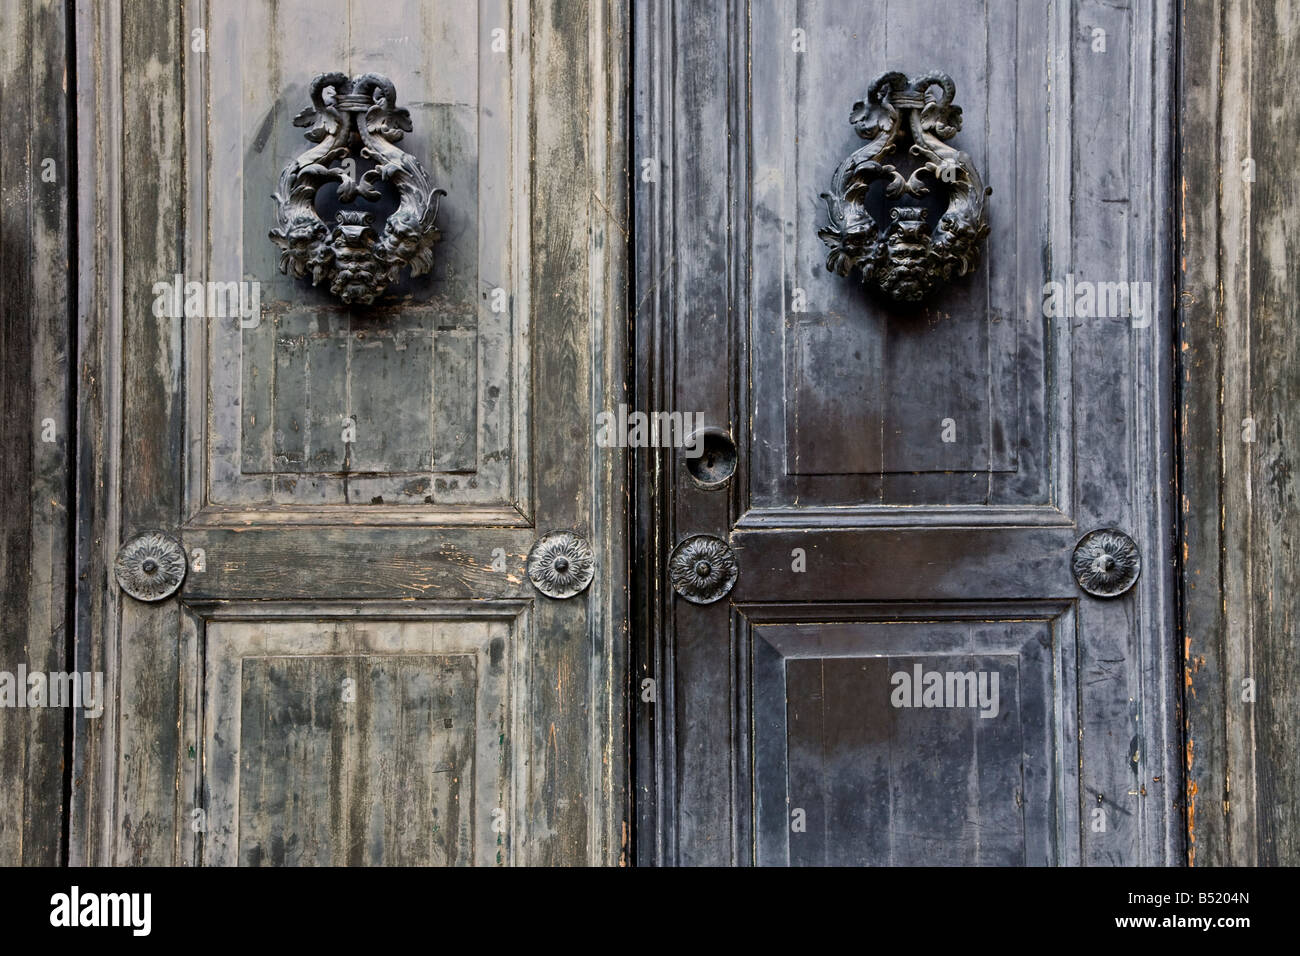 Venice Door With Ornate Door Knockers And Key Hole   Stock Image